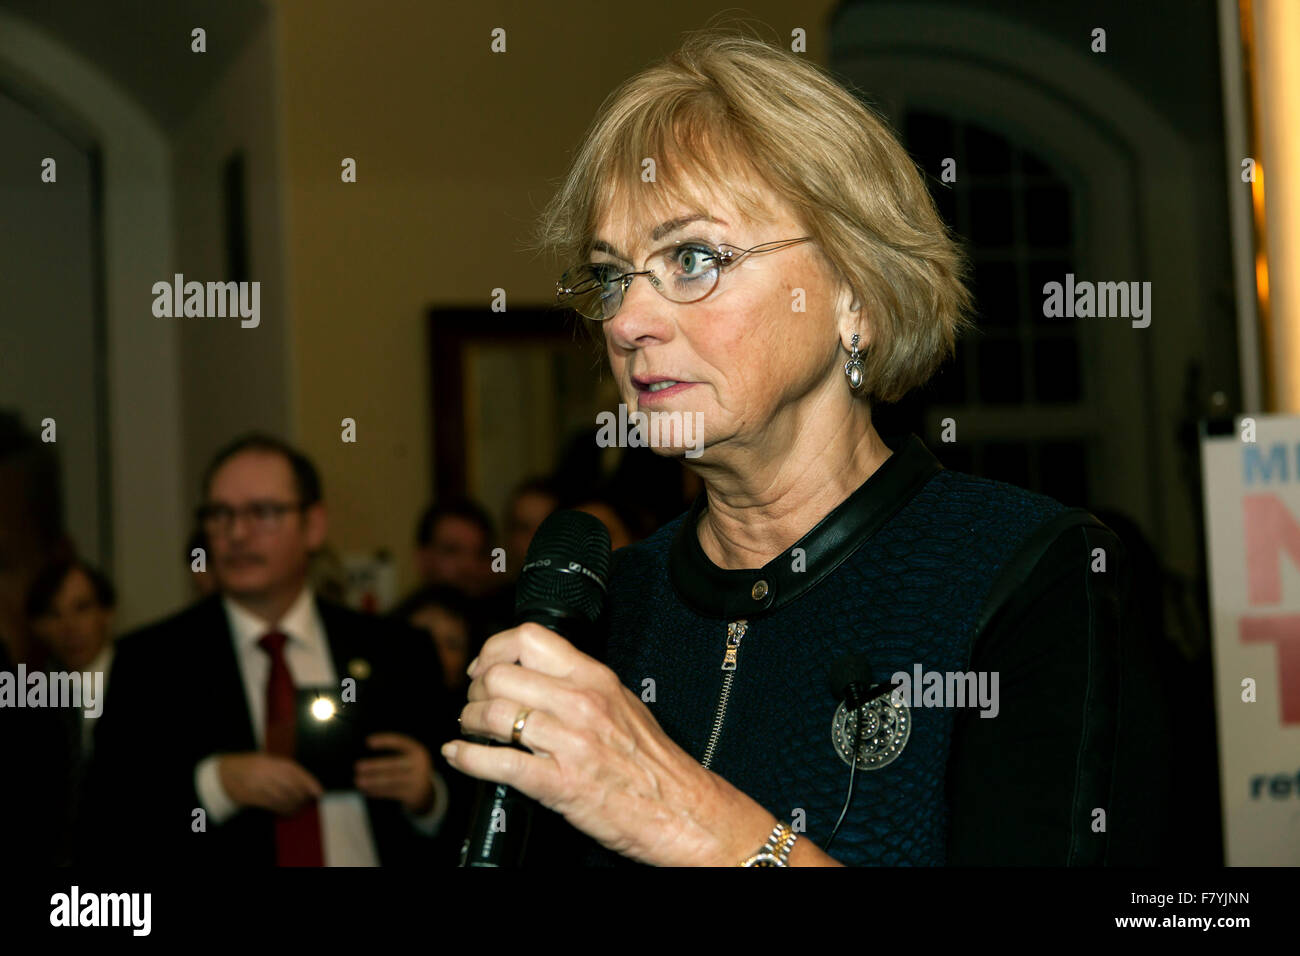 Copenhagen, Denmark, December 3rd, 2015. Grand old lady of the Danish People's Party and Speaker of the House, Pia - Stock Image